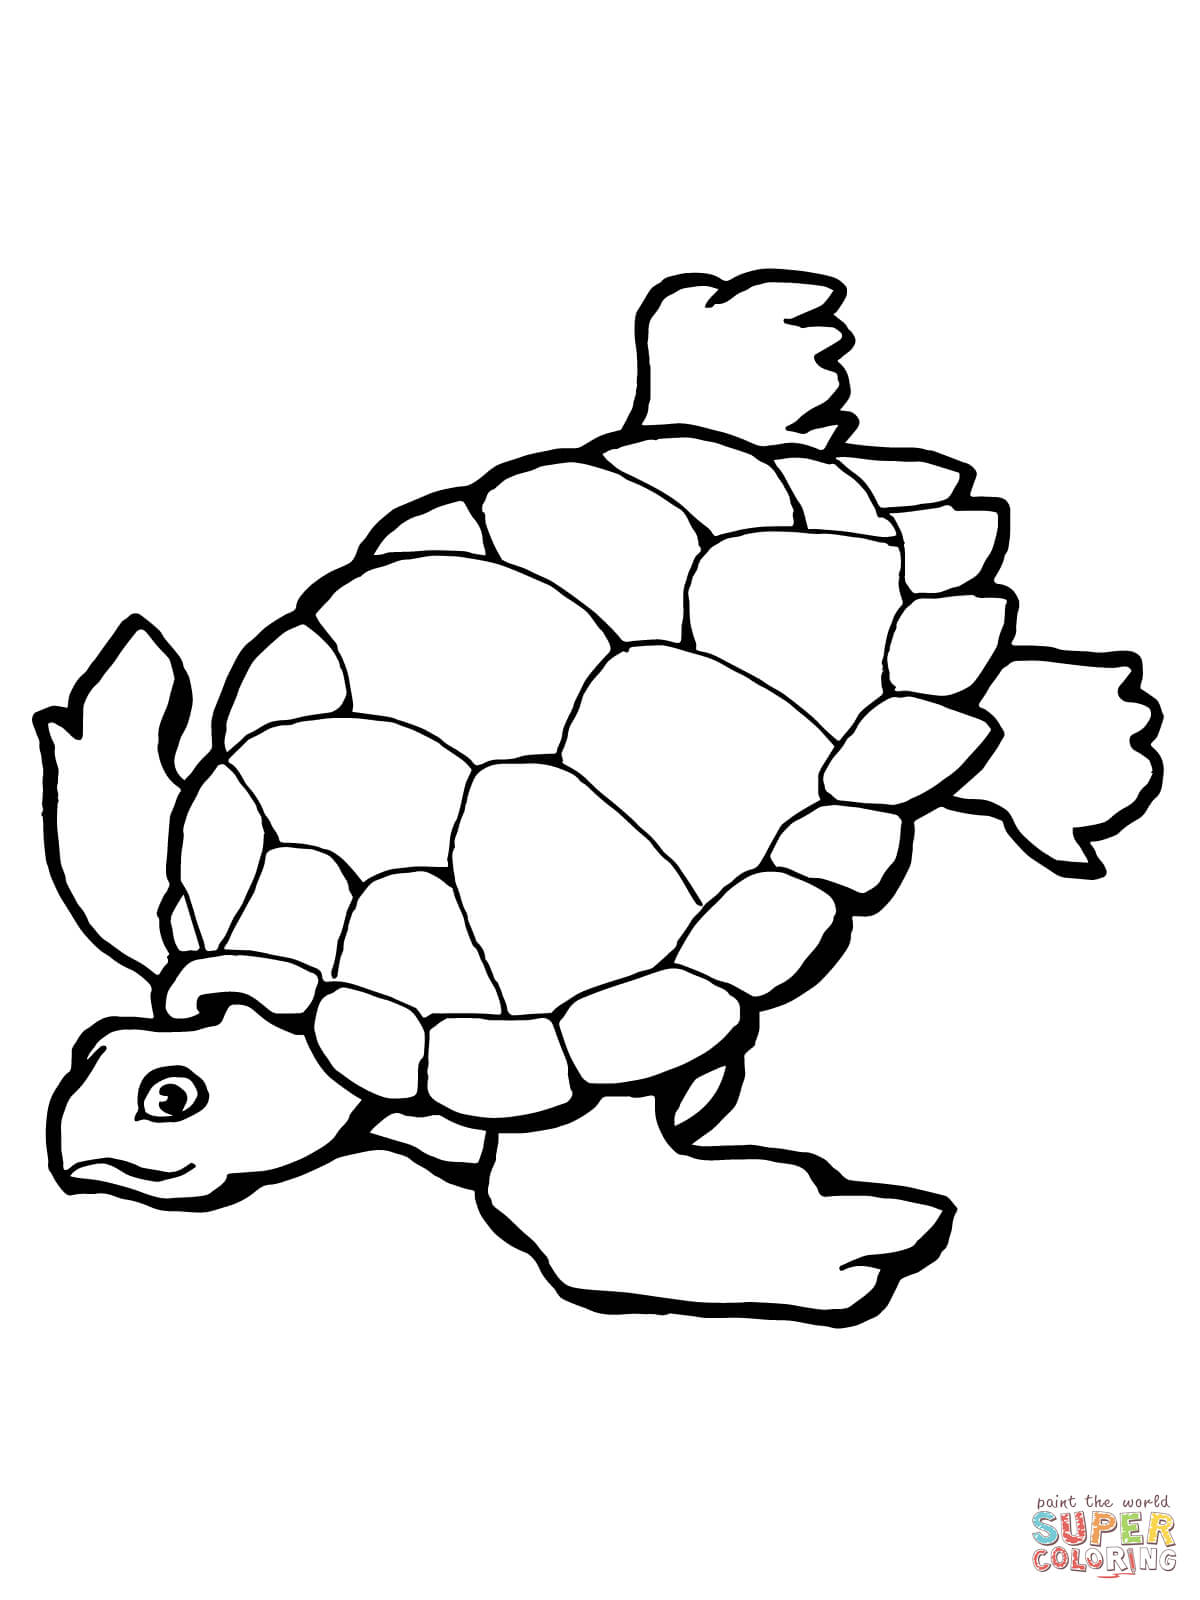 Turtle Coloring Pages | Free download on ClipArtMag